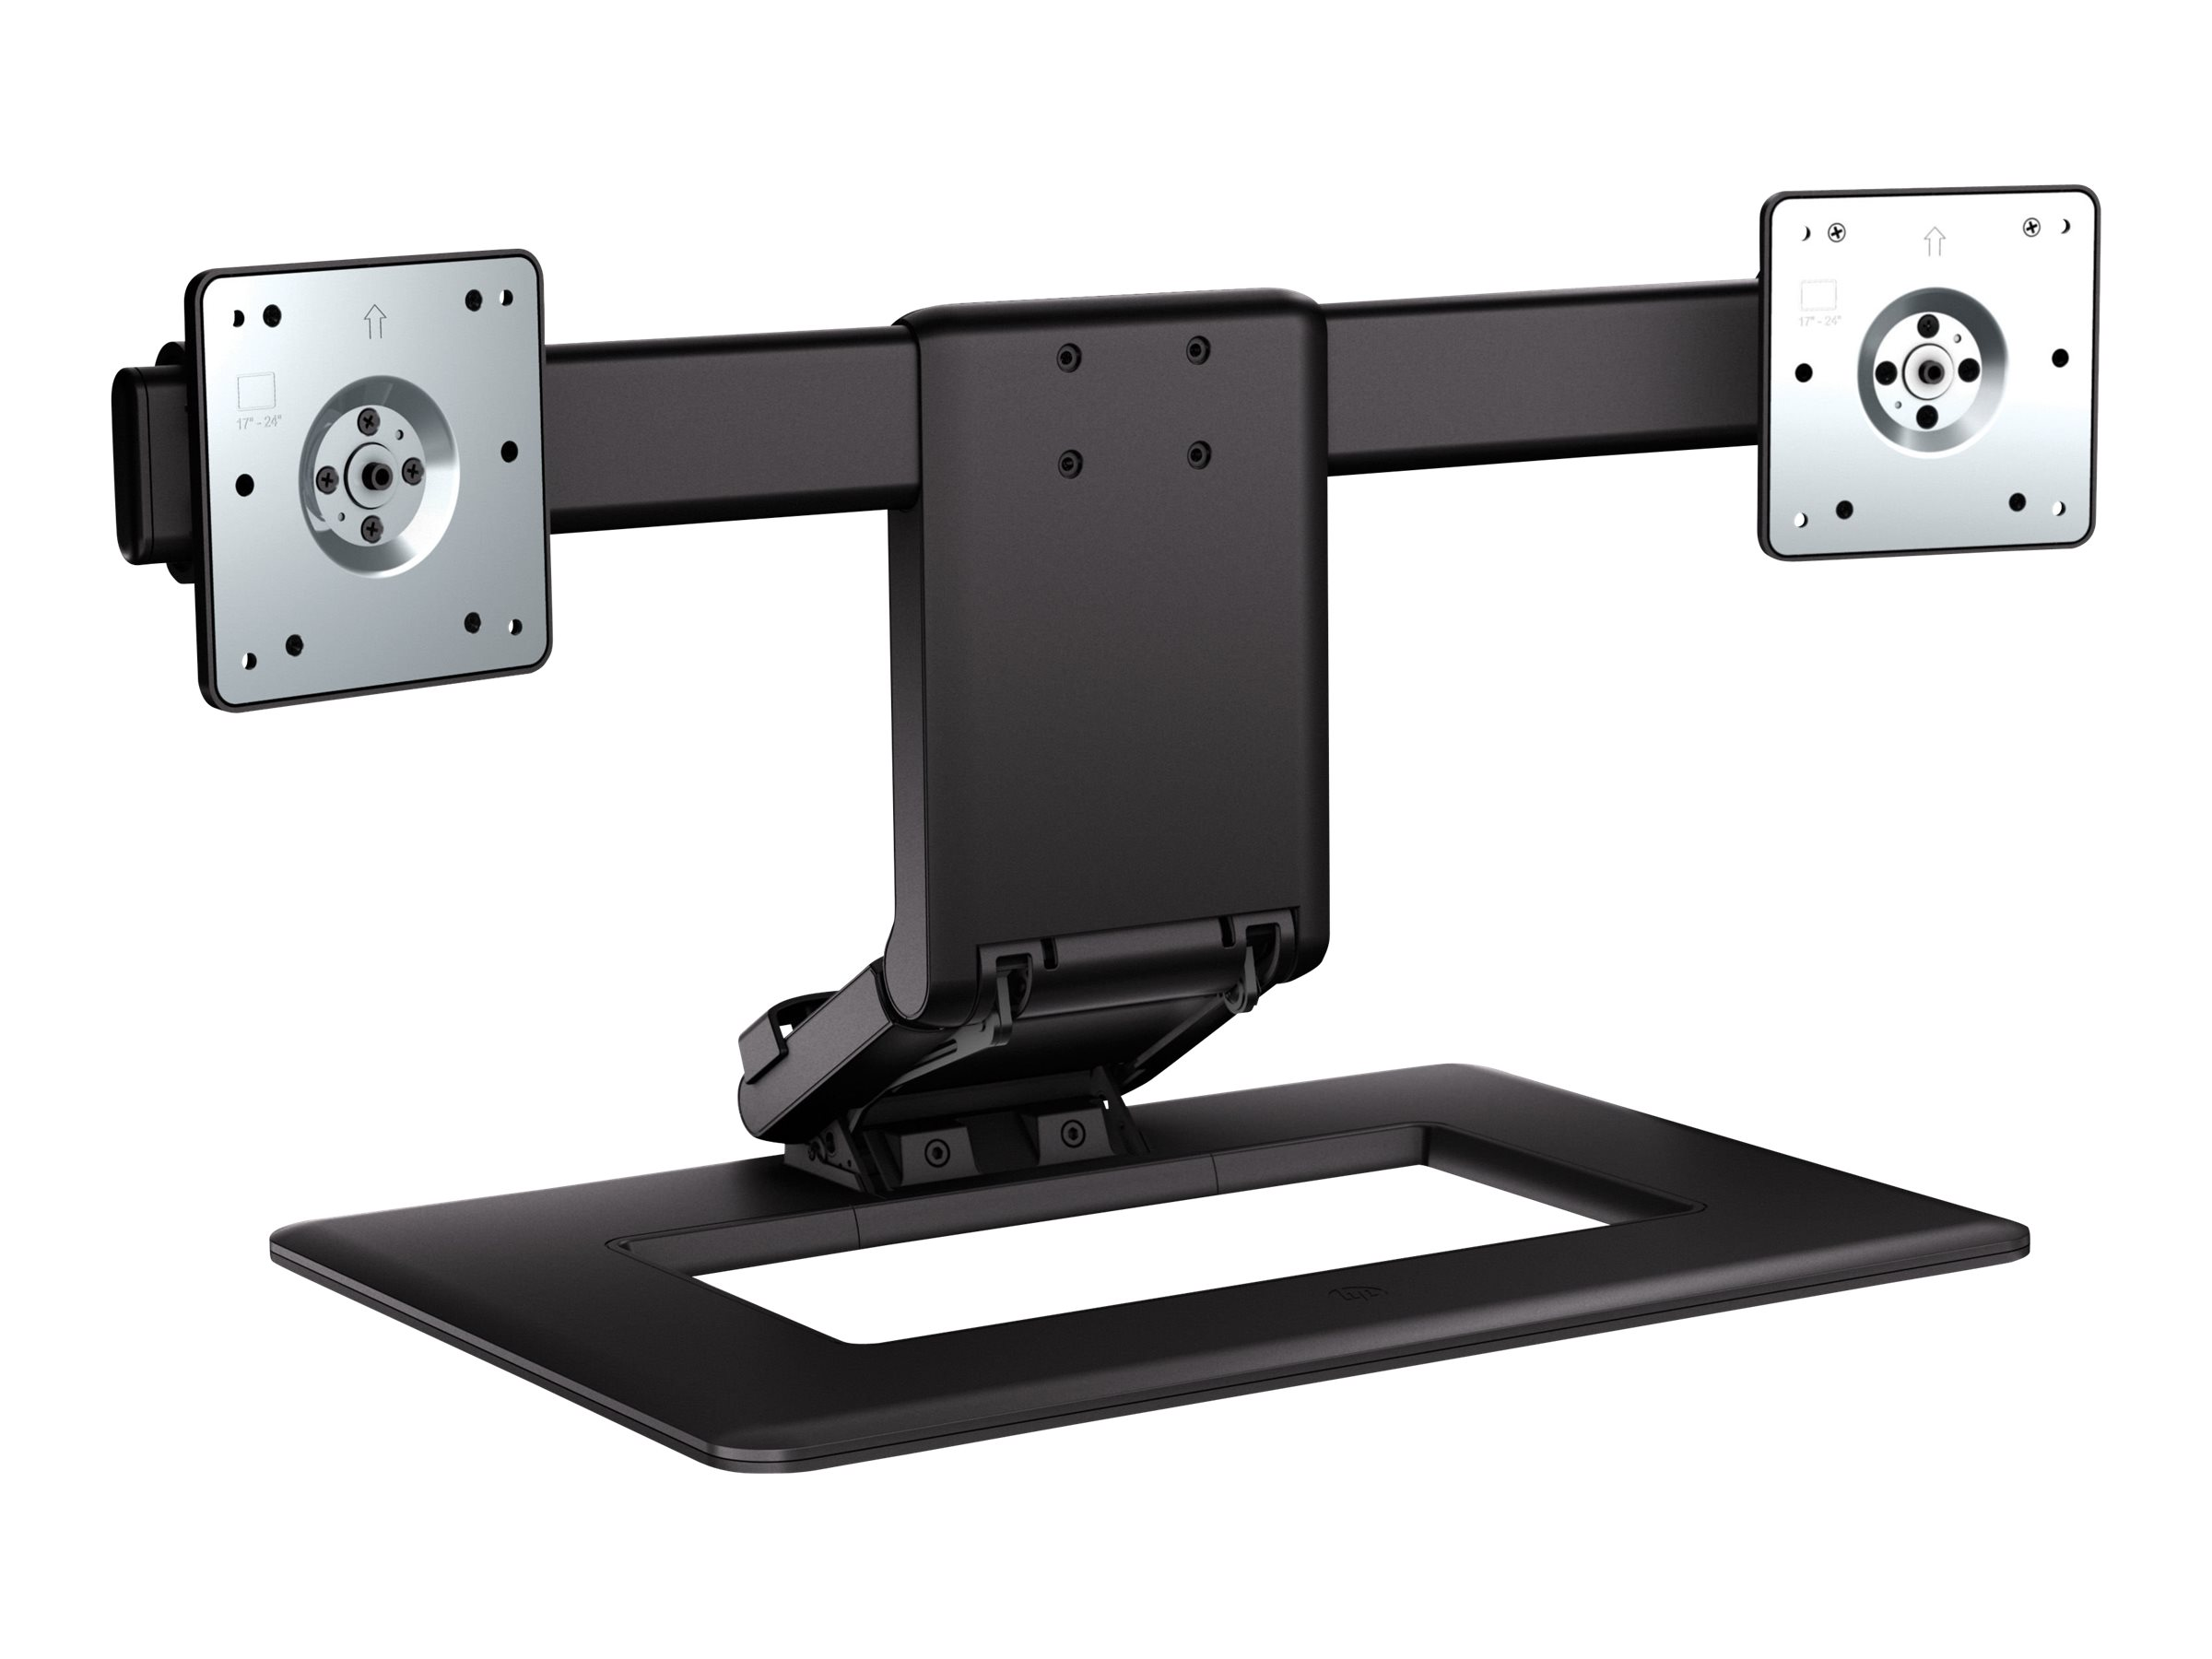 Image for Hp Adjustable Dual Display Stand - Stand from Circuit City